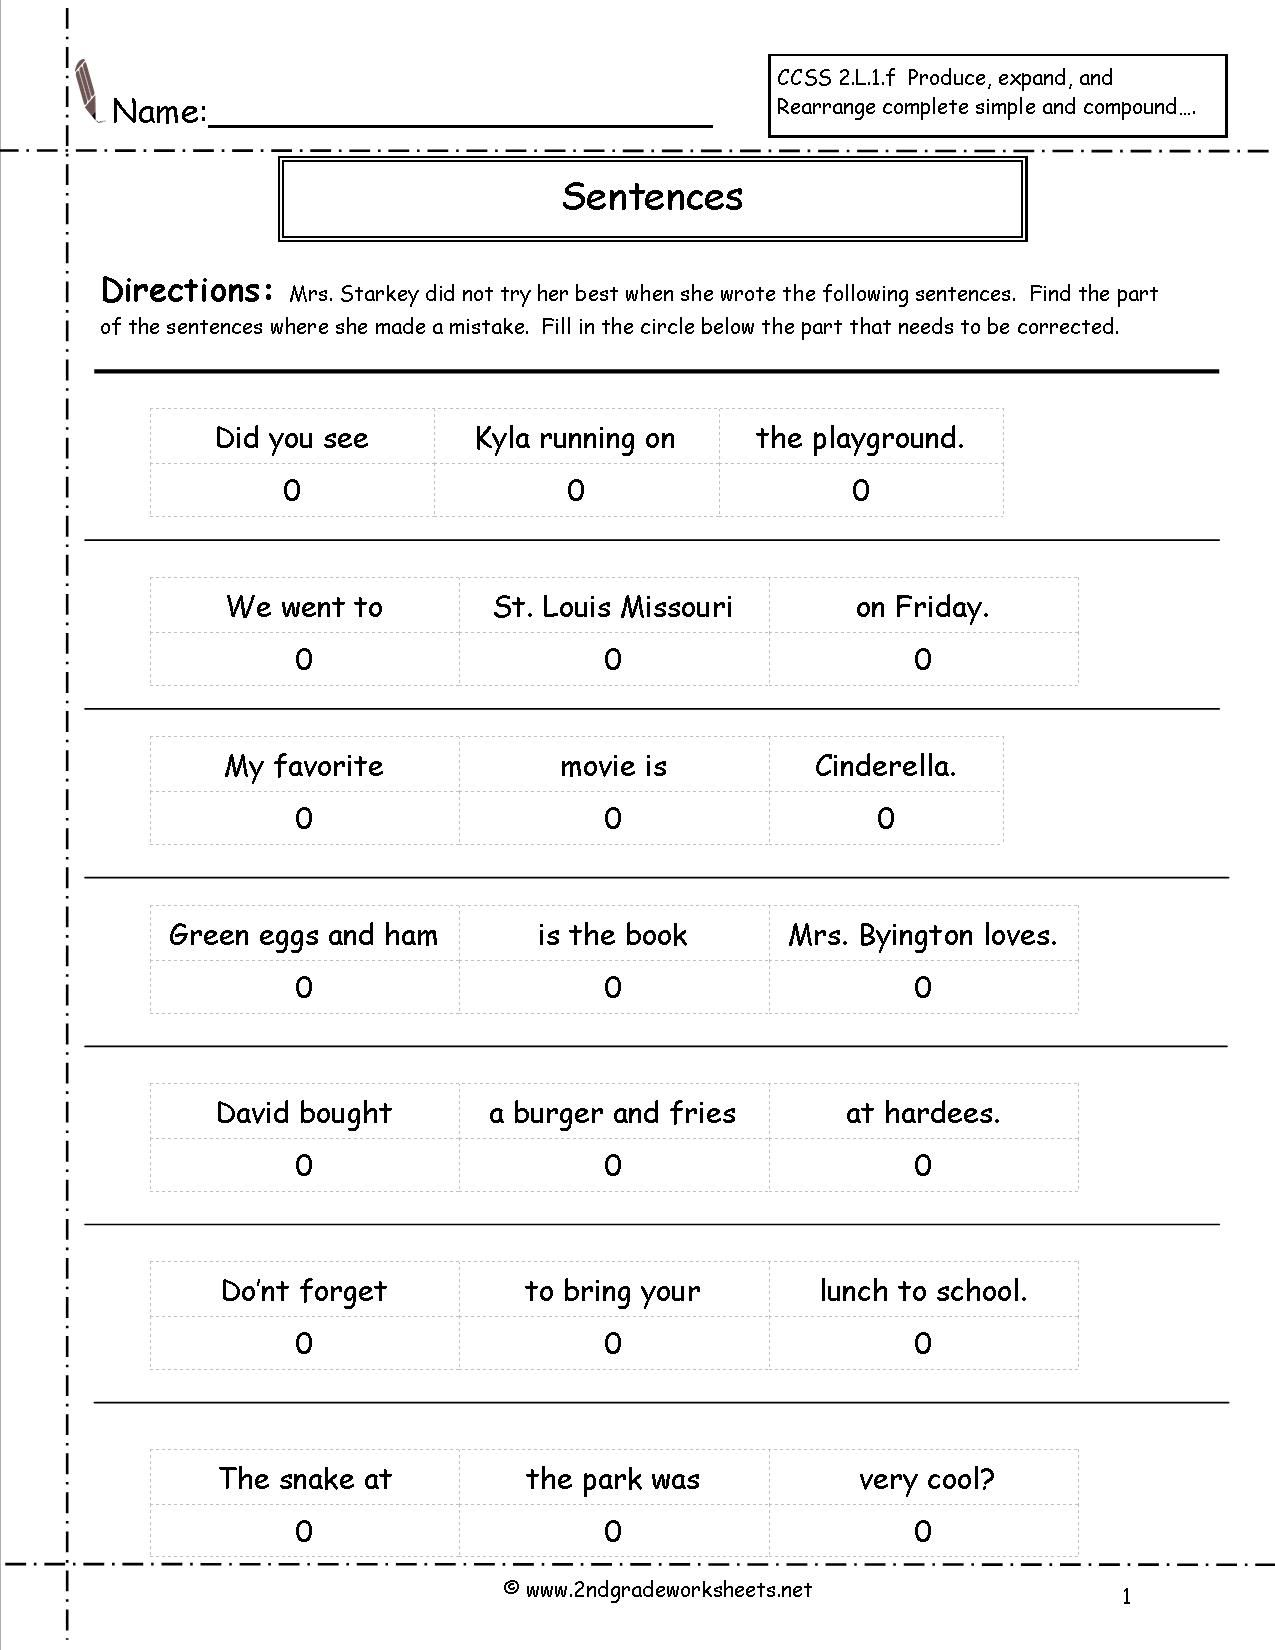 Worksheets Grammar Worksheets 1st Grade correct the sentence worksheet katelynns school work second grade sentences worksheets ccss worksheets